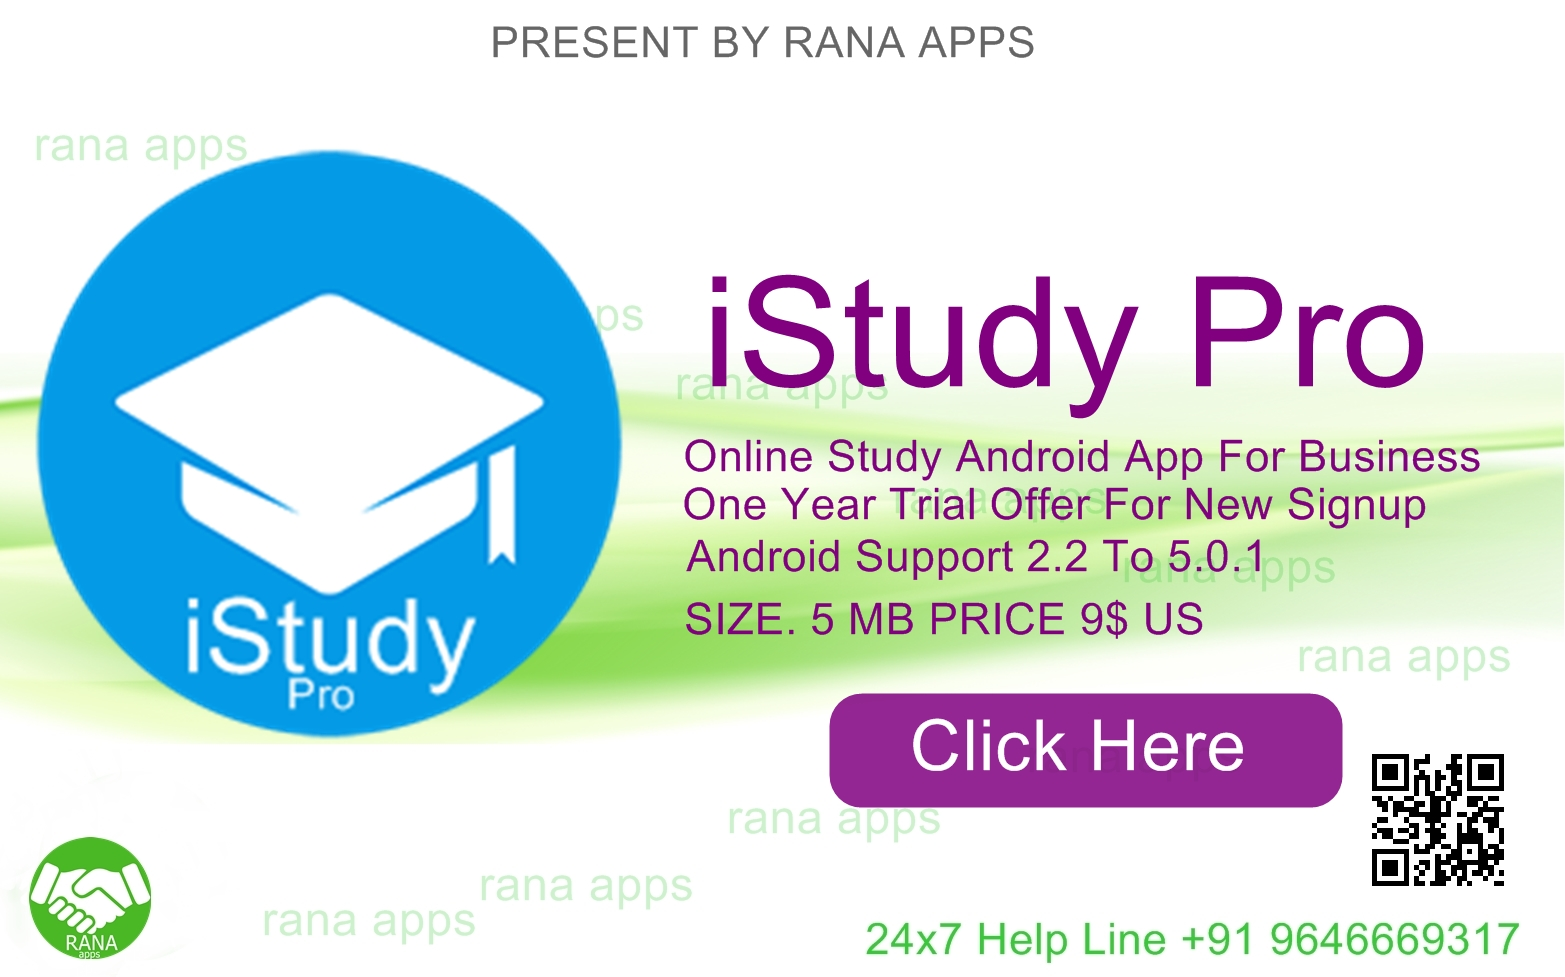 Download iStudy Pro Android App By Rana Apps ~ Rana Apps India